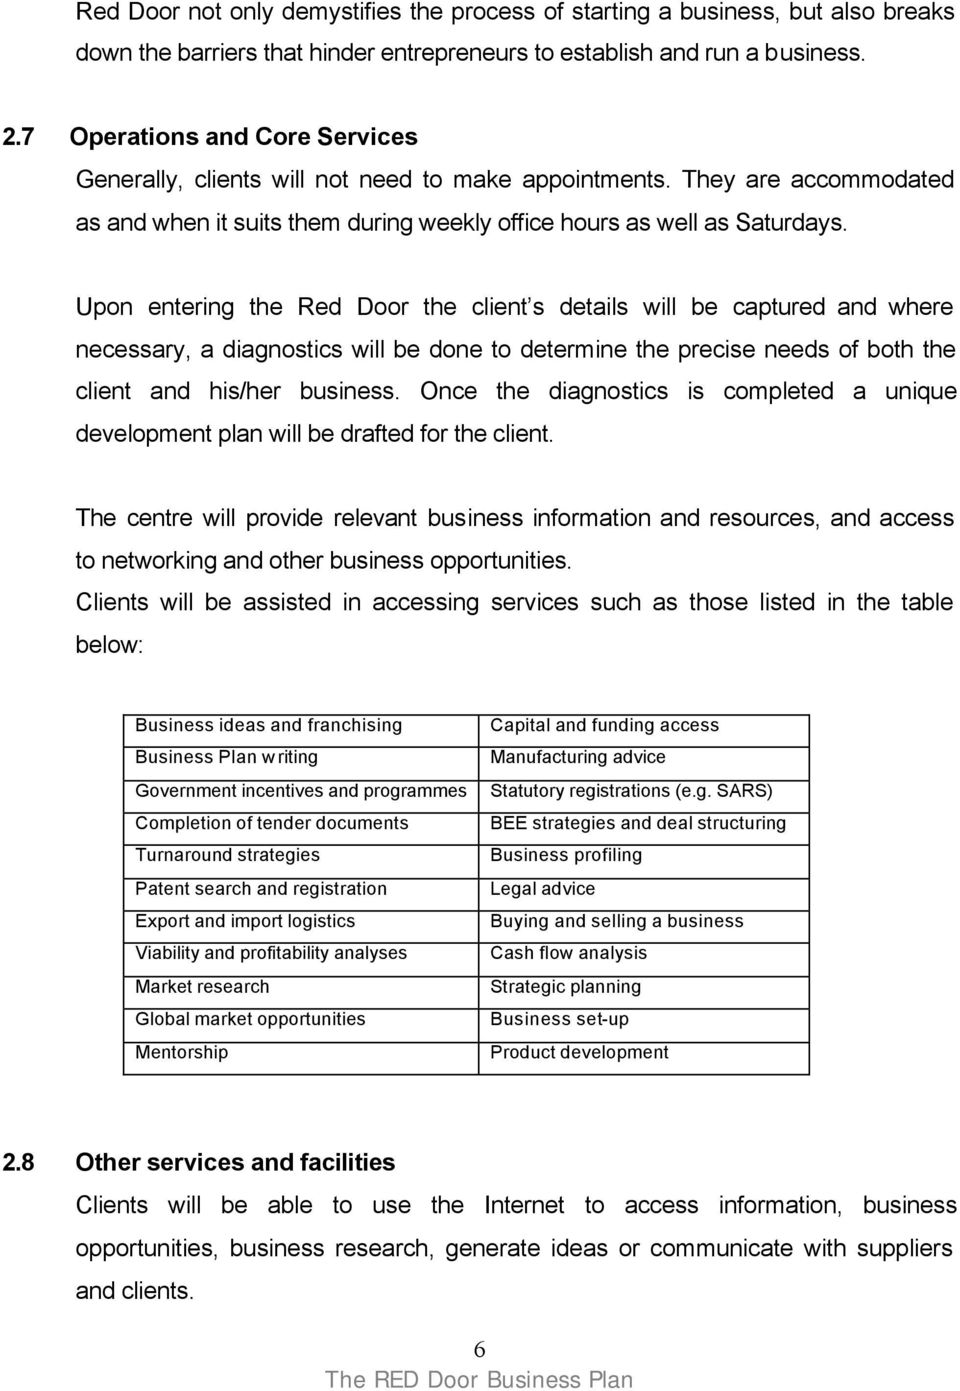 umsobomvu business plan guidelines